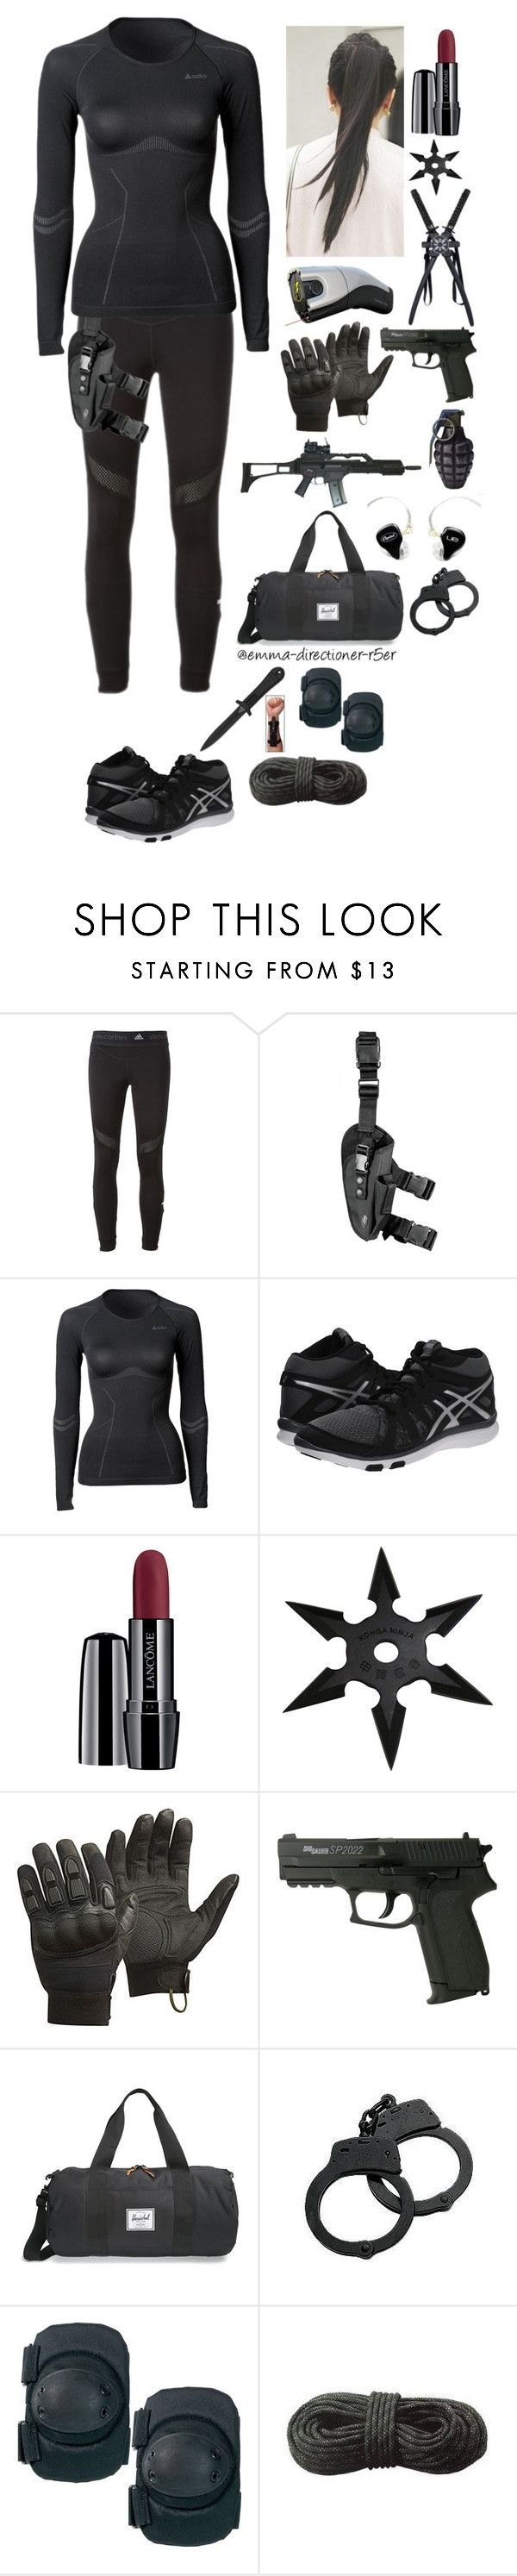 """""""S.H.I.E.L.D. agent #9"""" by emma-directioner-r5er ❤ liked on Polyvore featuring adidas, ODLO, Asics, Lancôme, CamelBak, Herschel Supply Co., 5.11 Tactical and Swat"""